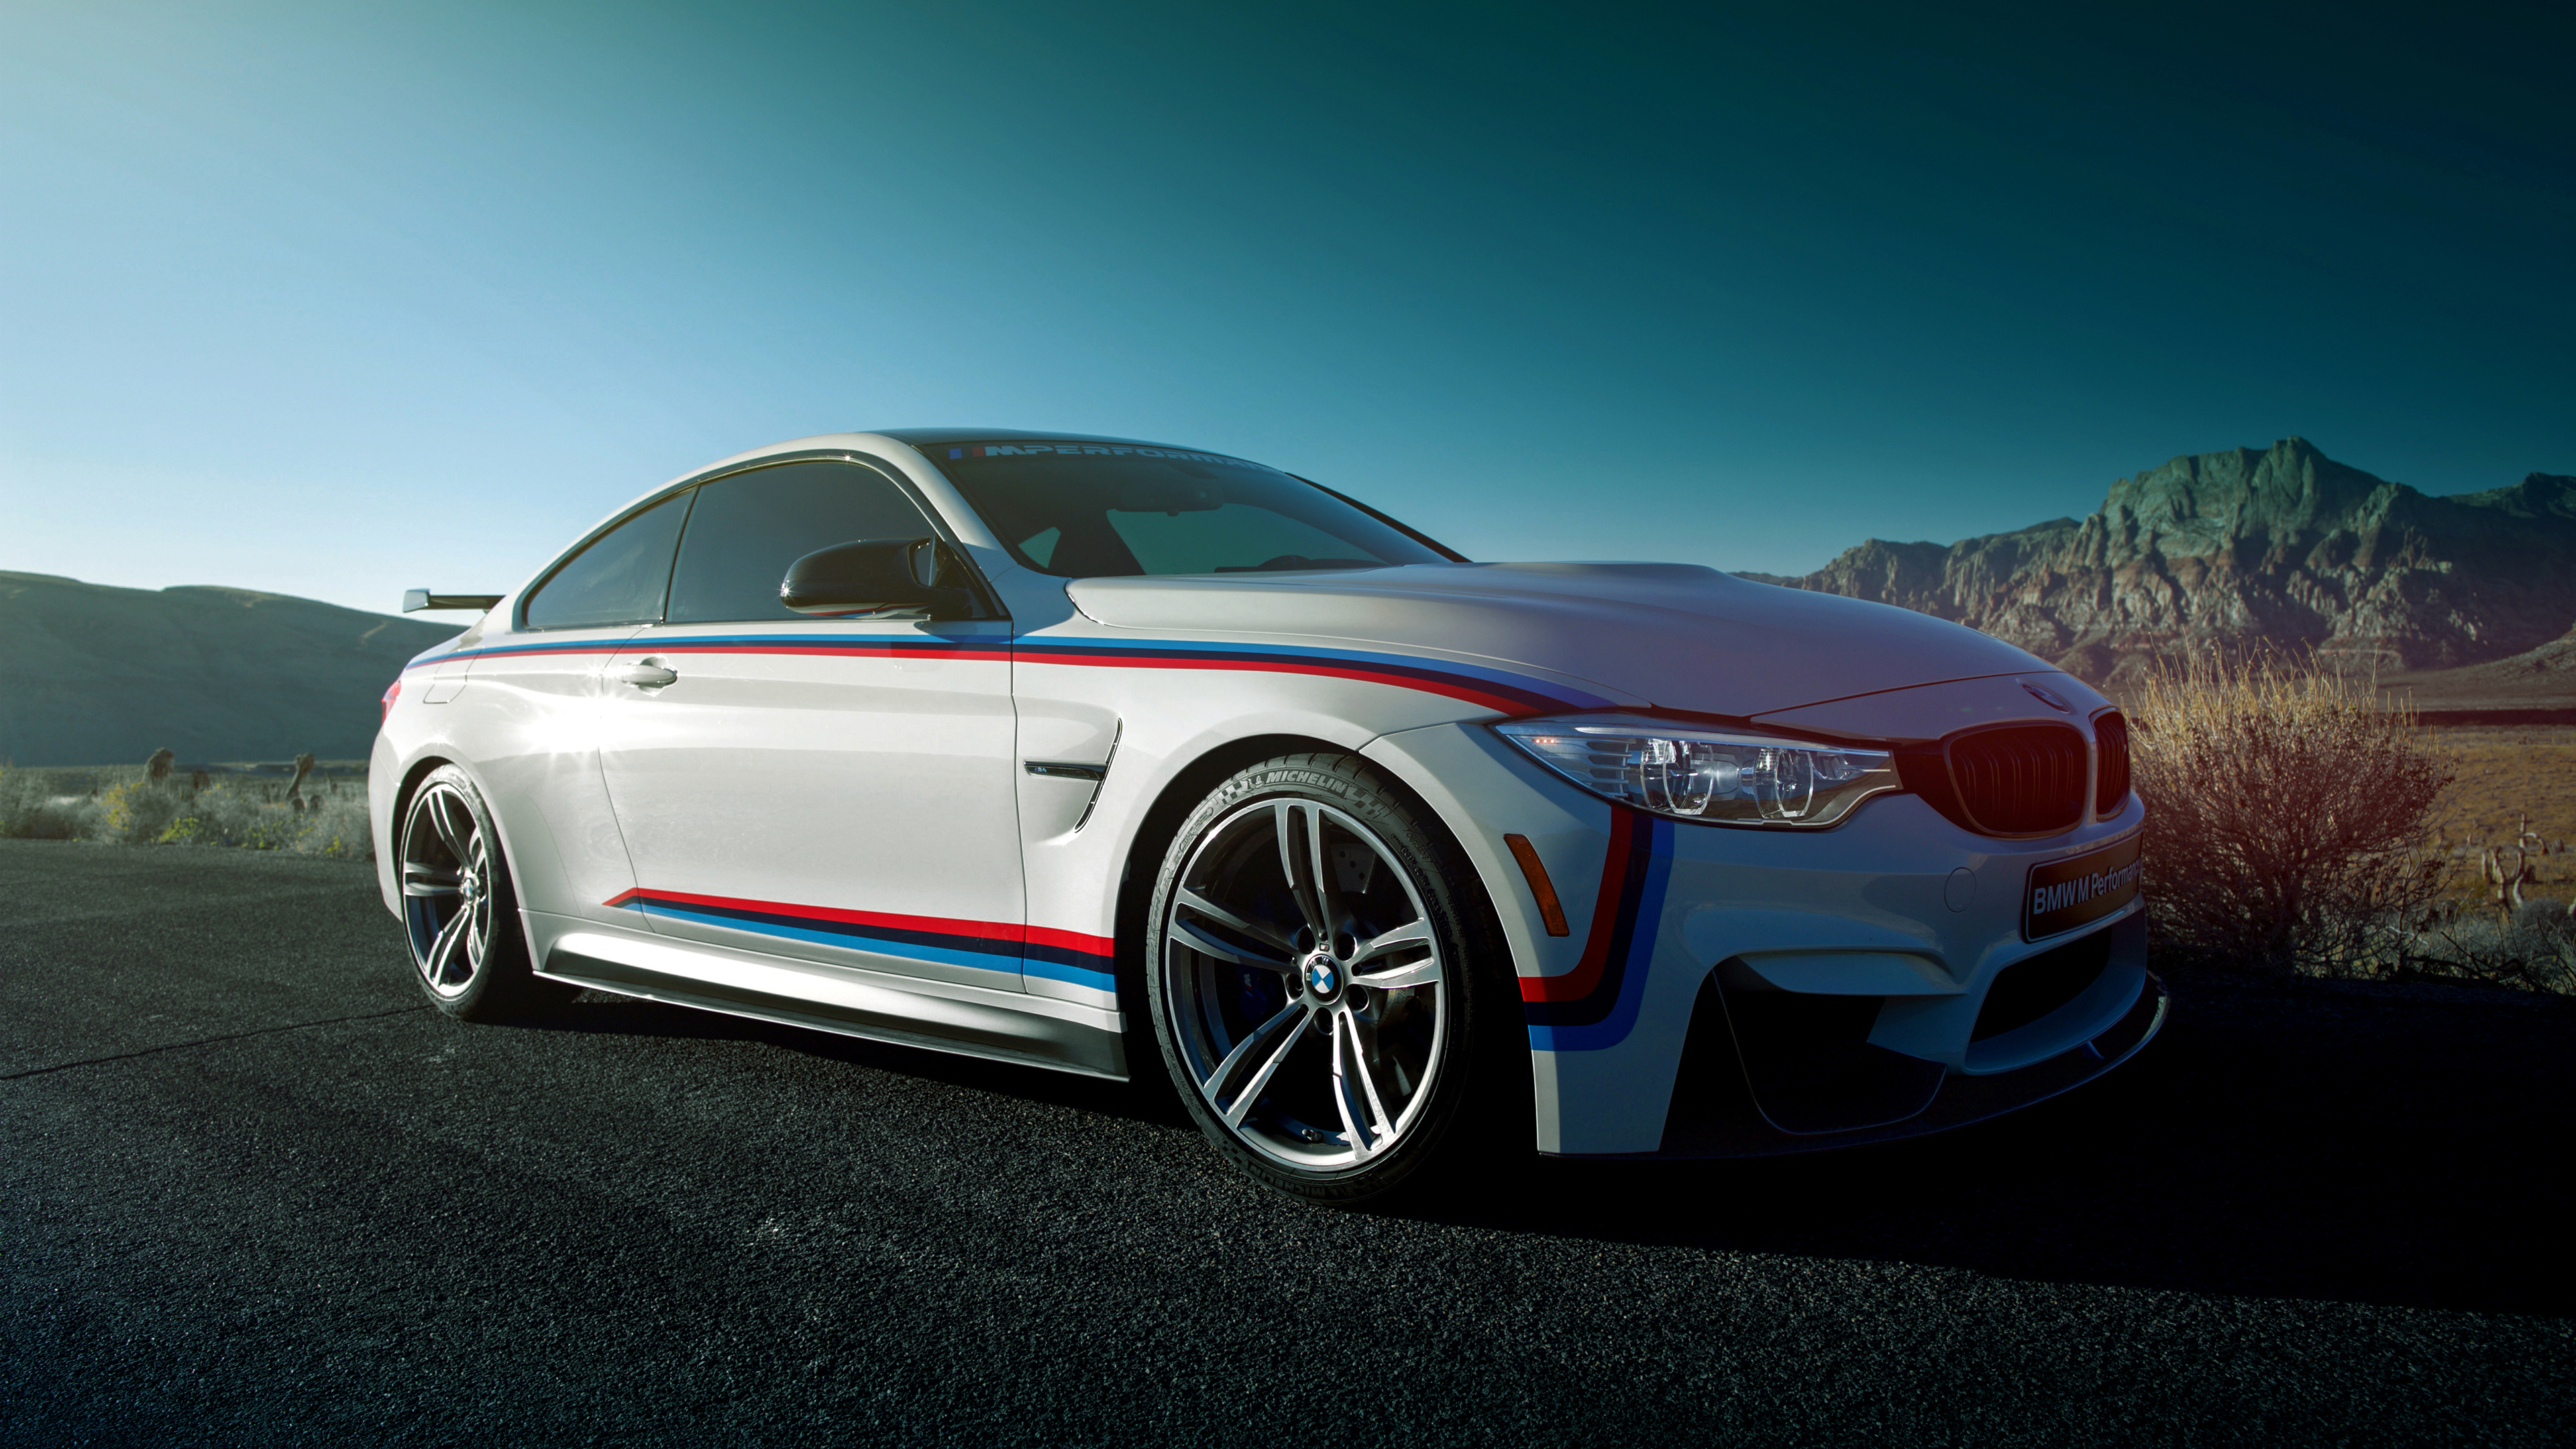 bmw m4 coupe m performance wallpaper | hd car wallpapers | id #6286